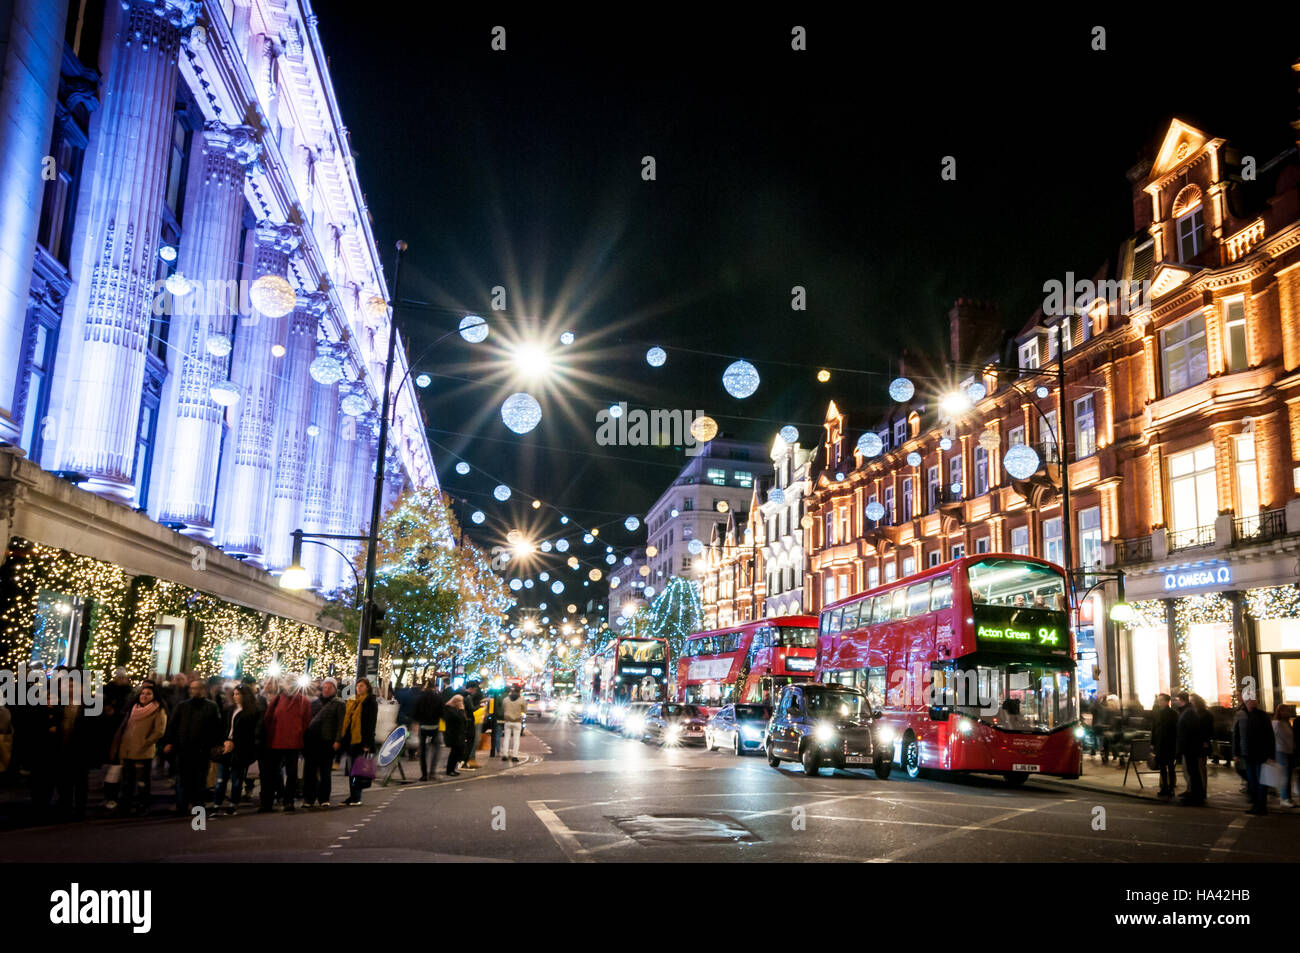 christmas-2016-lights-on-oxford-street-london-united-kingdom-HA42HB.jpg